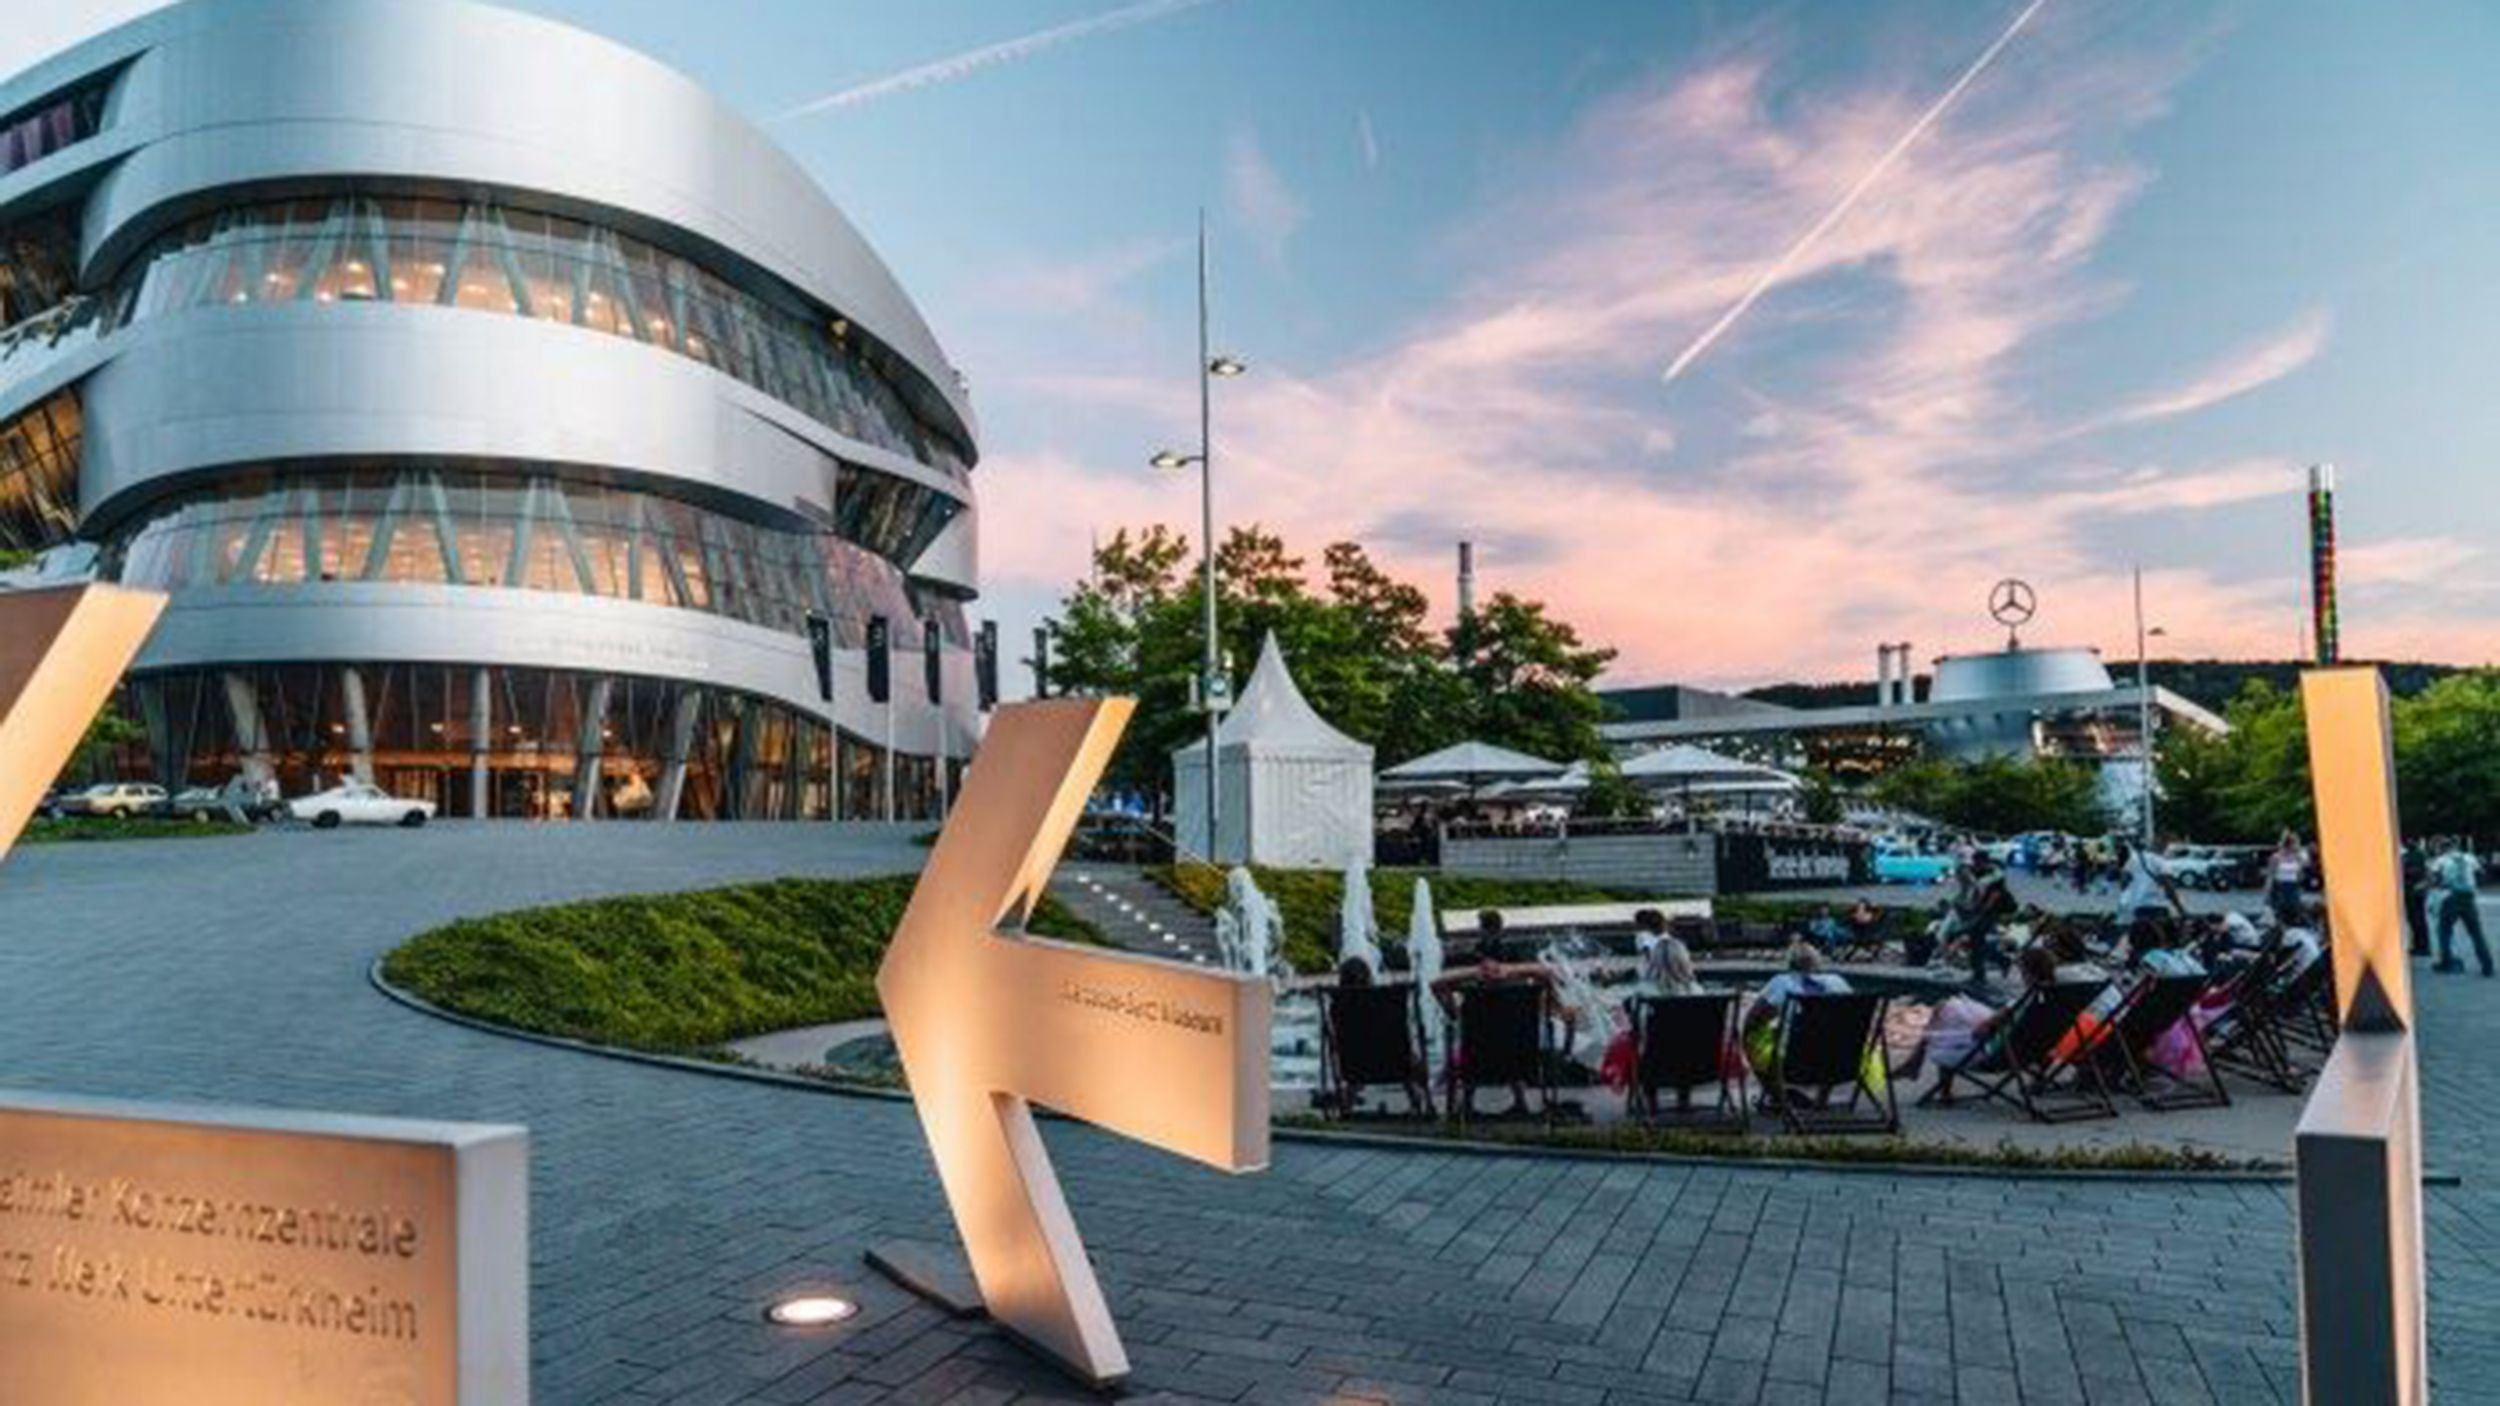 https://cloud.mb-lounge.com/files/HQ-Events/Classic/Museum/01-mercedes-benz-museum-cars-coffee-after-work-2560x1440.jpg